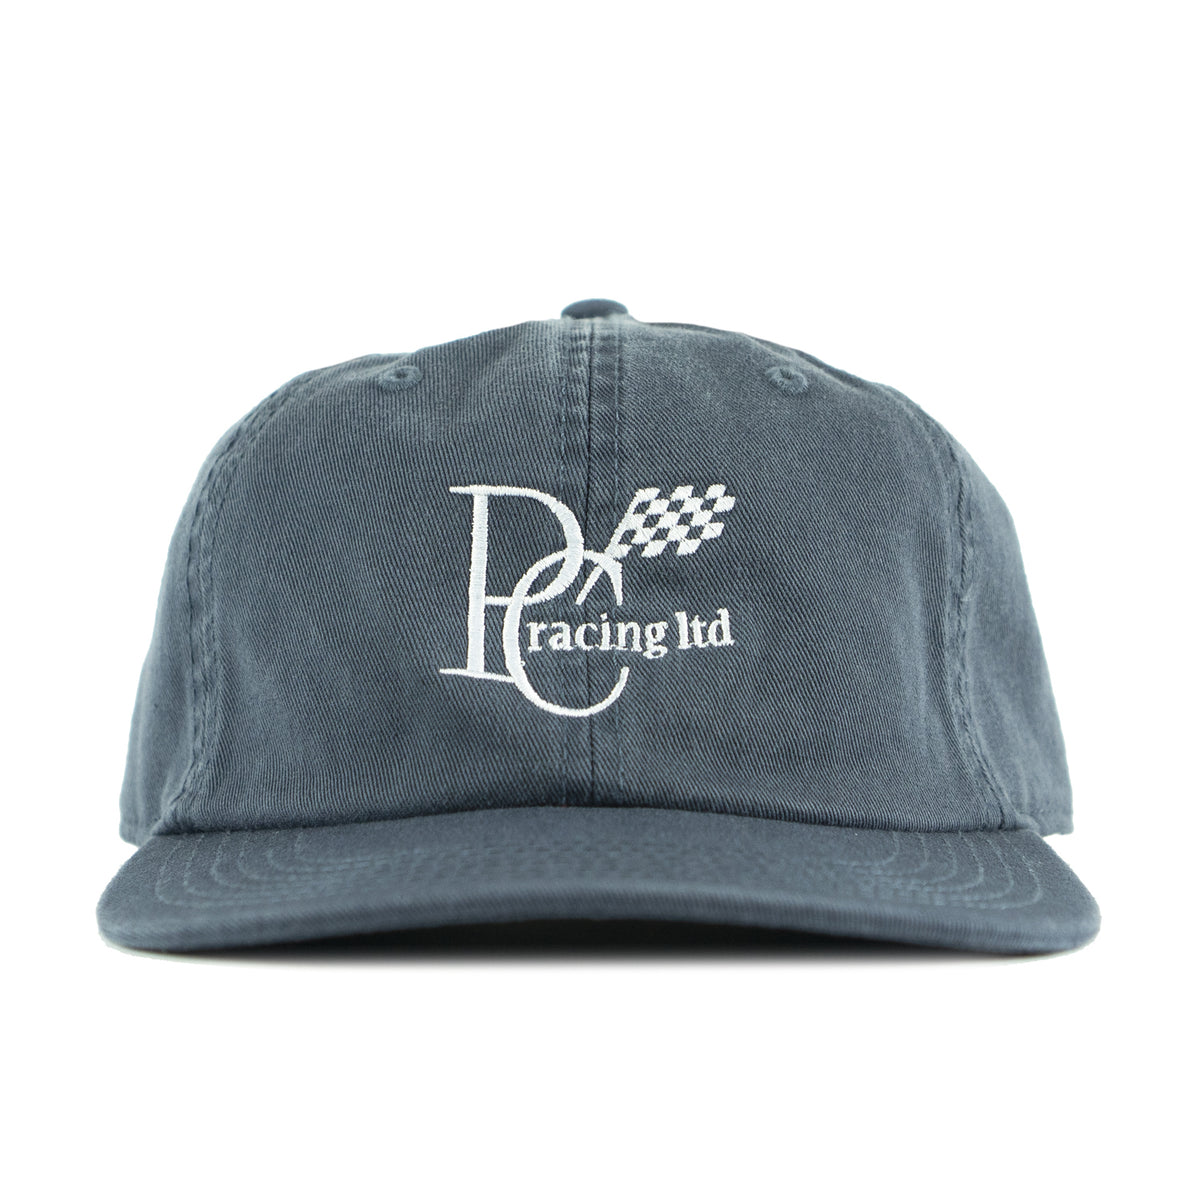 RACING LTD CAP BLUE